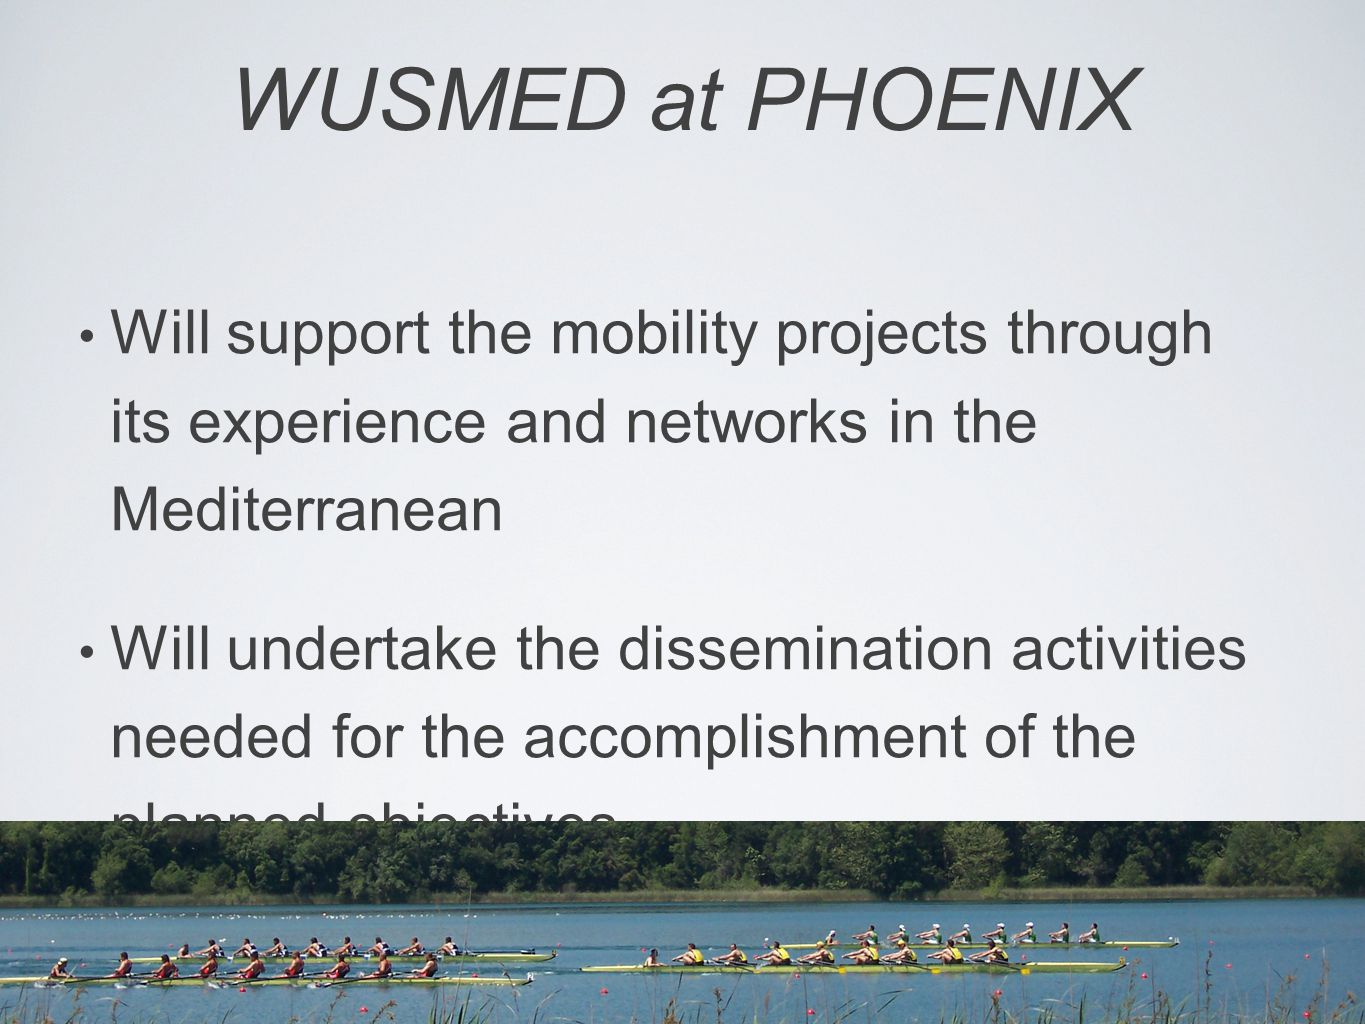 WUSMED at PHOENIX Will support the mobility projects through its experience and networks in the Mediterranean Will undertake the dissemination activities needed for the accomplishment of the planned objectives.